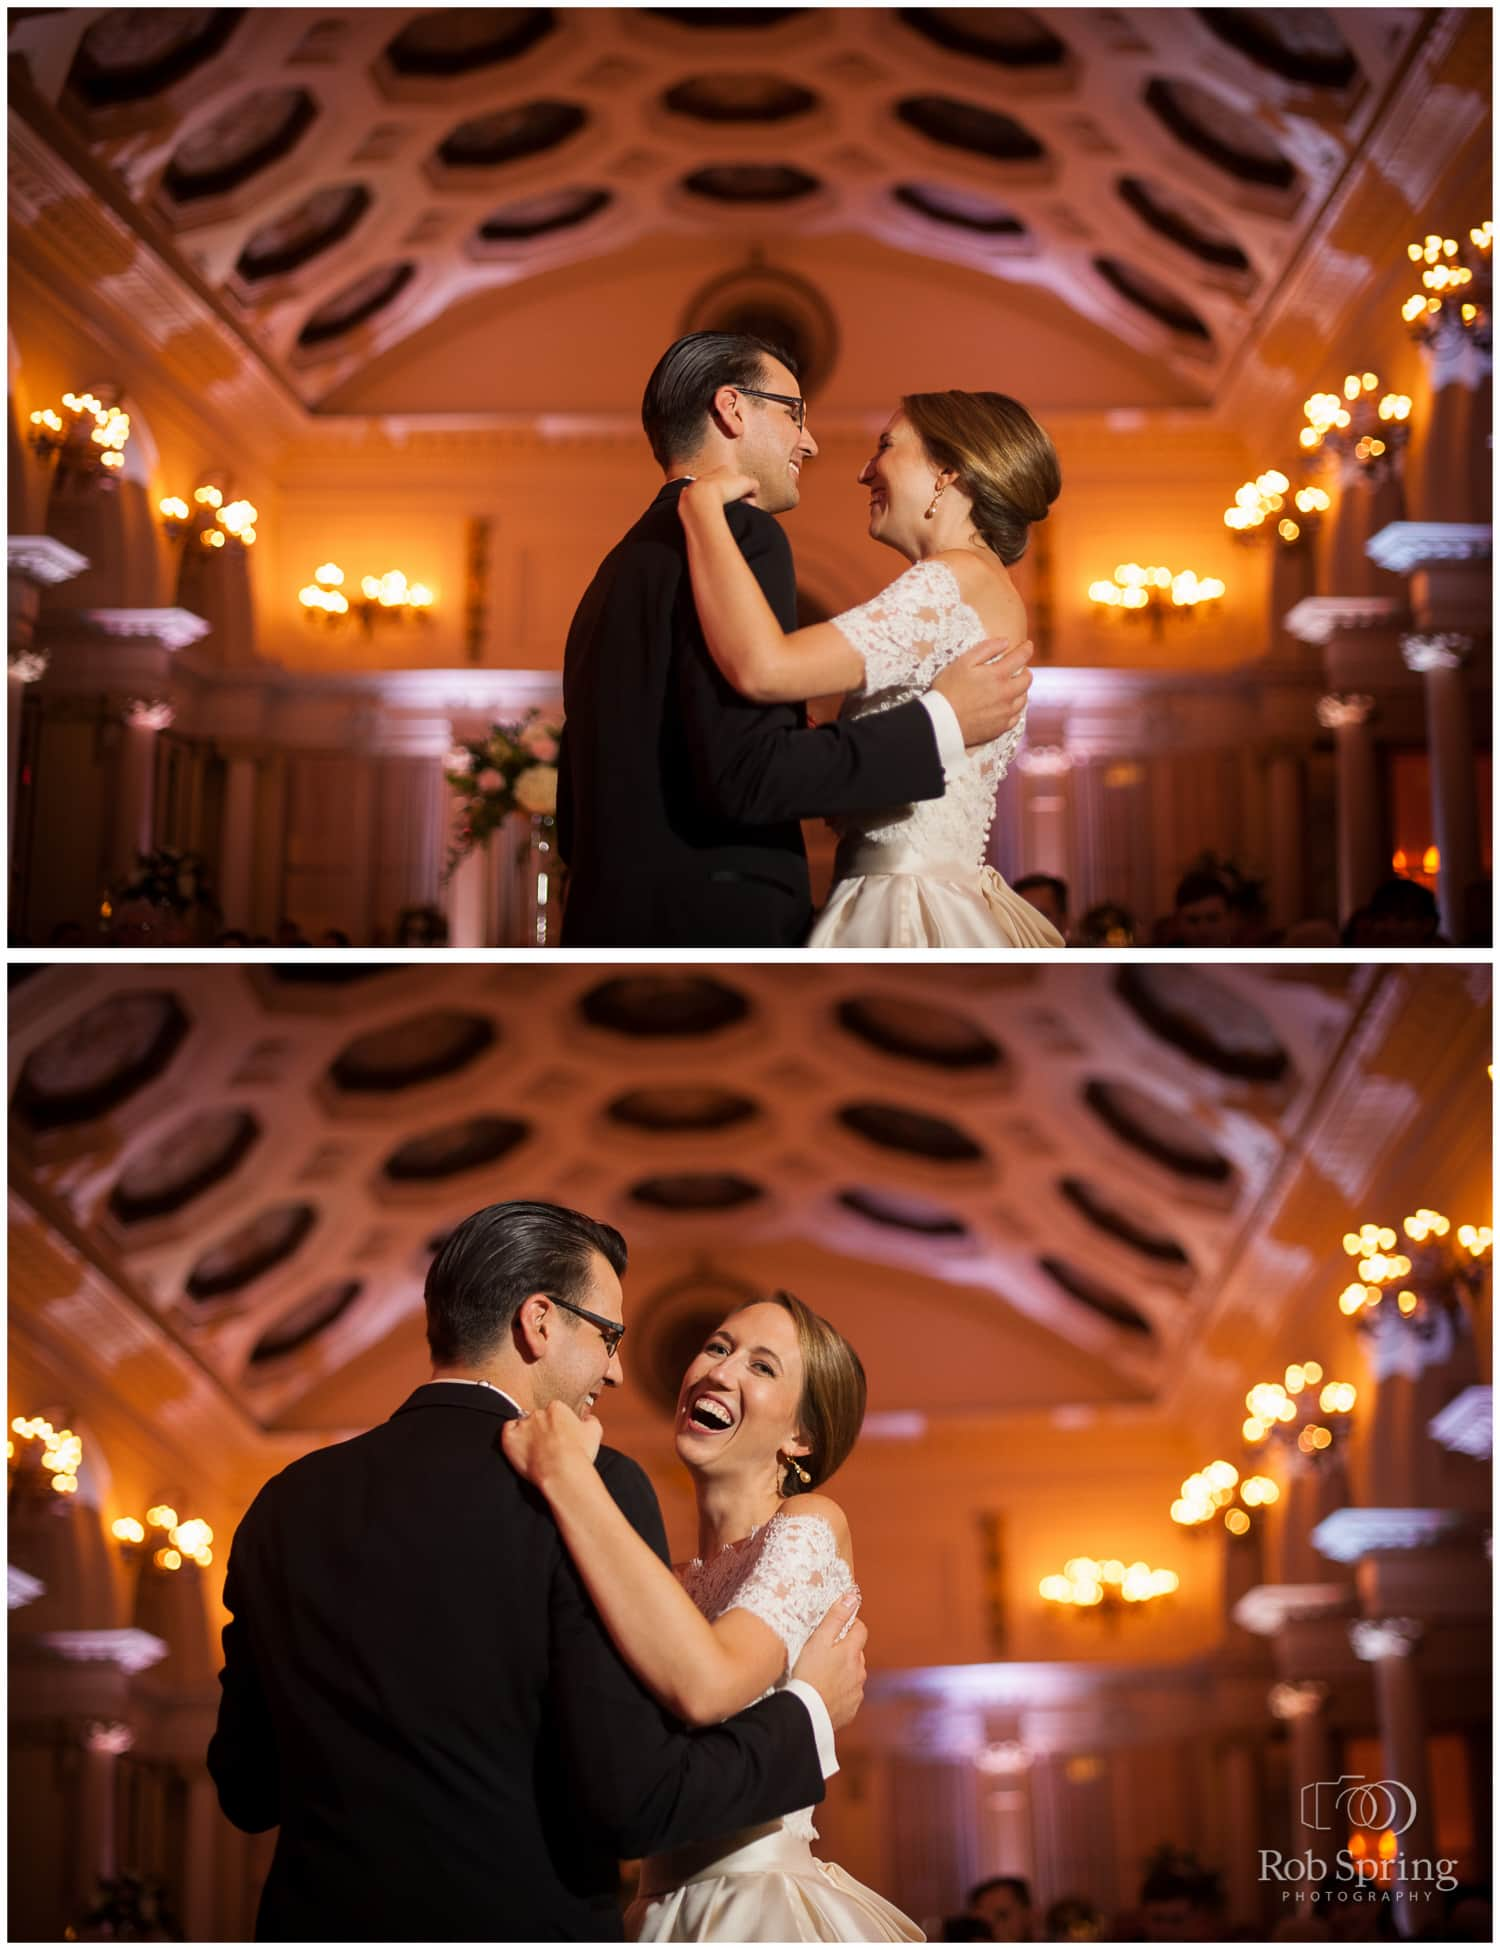 Fun laughing happy first dance at the Canfield Casino in Saratoga Springs, NY Wedding photos